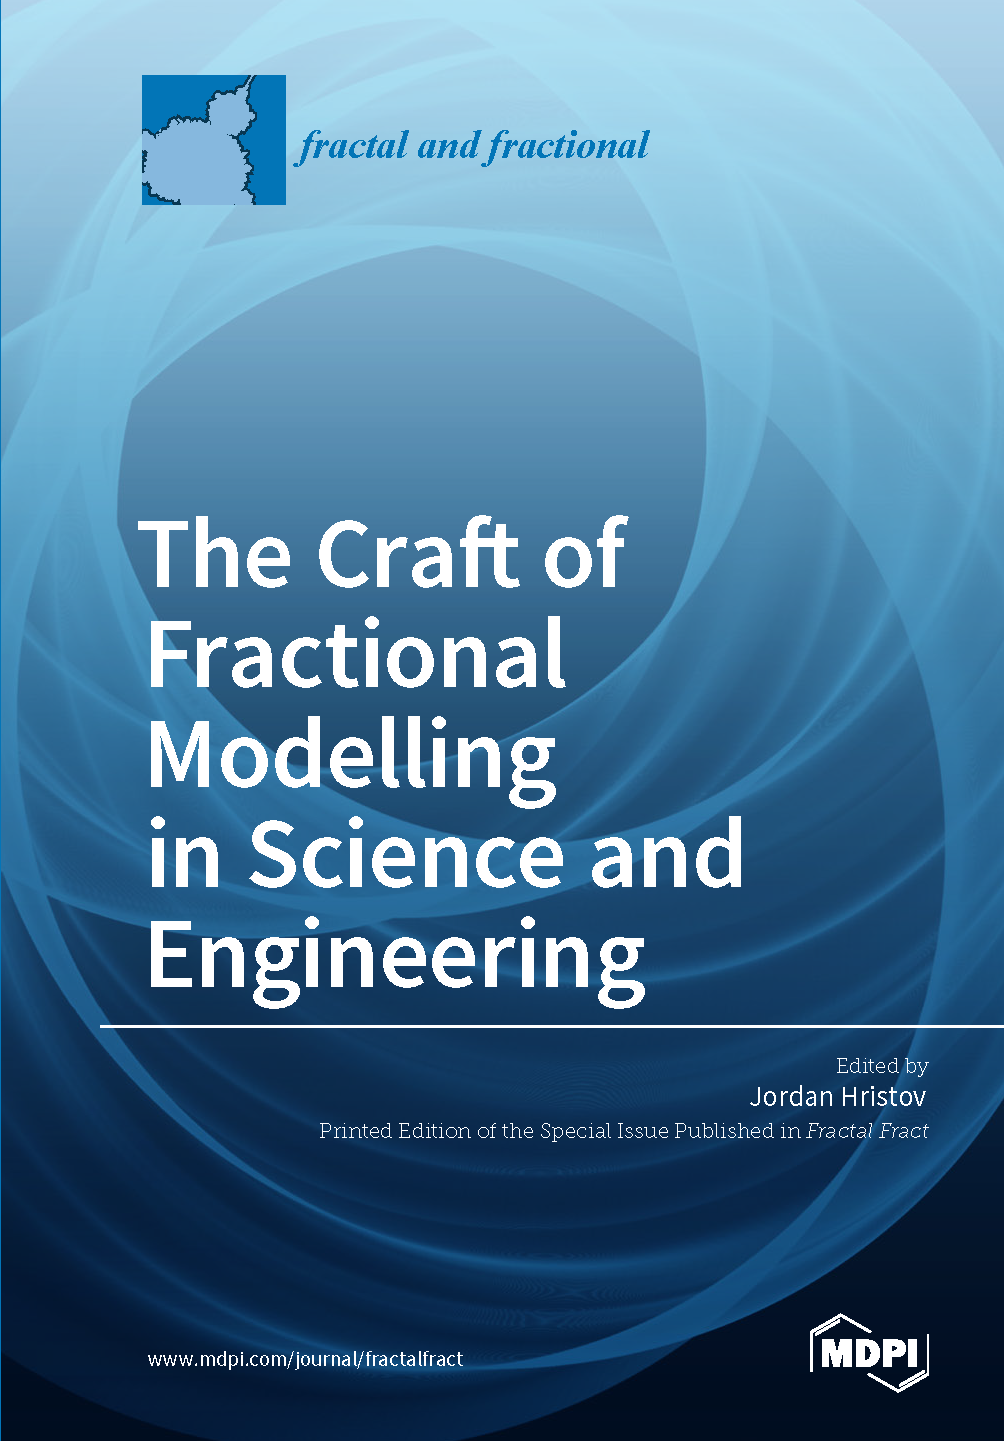 The Craft of Fractional Modelling in Science and Engineering